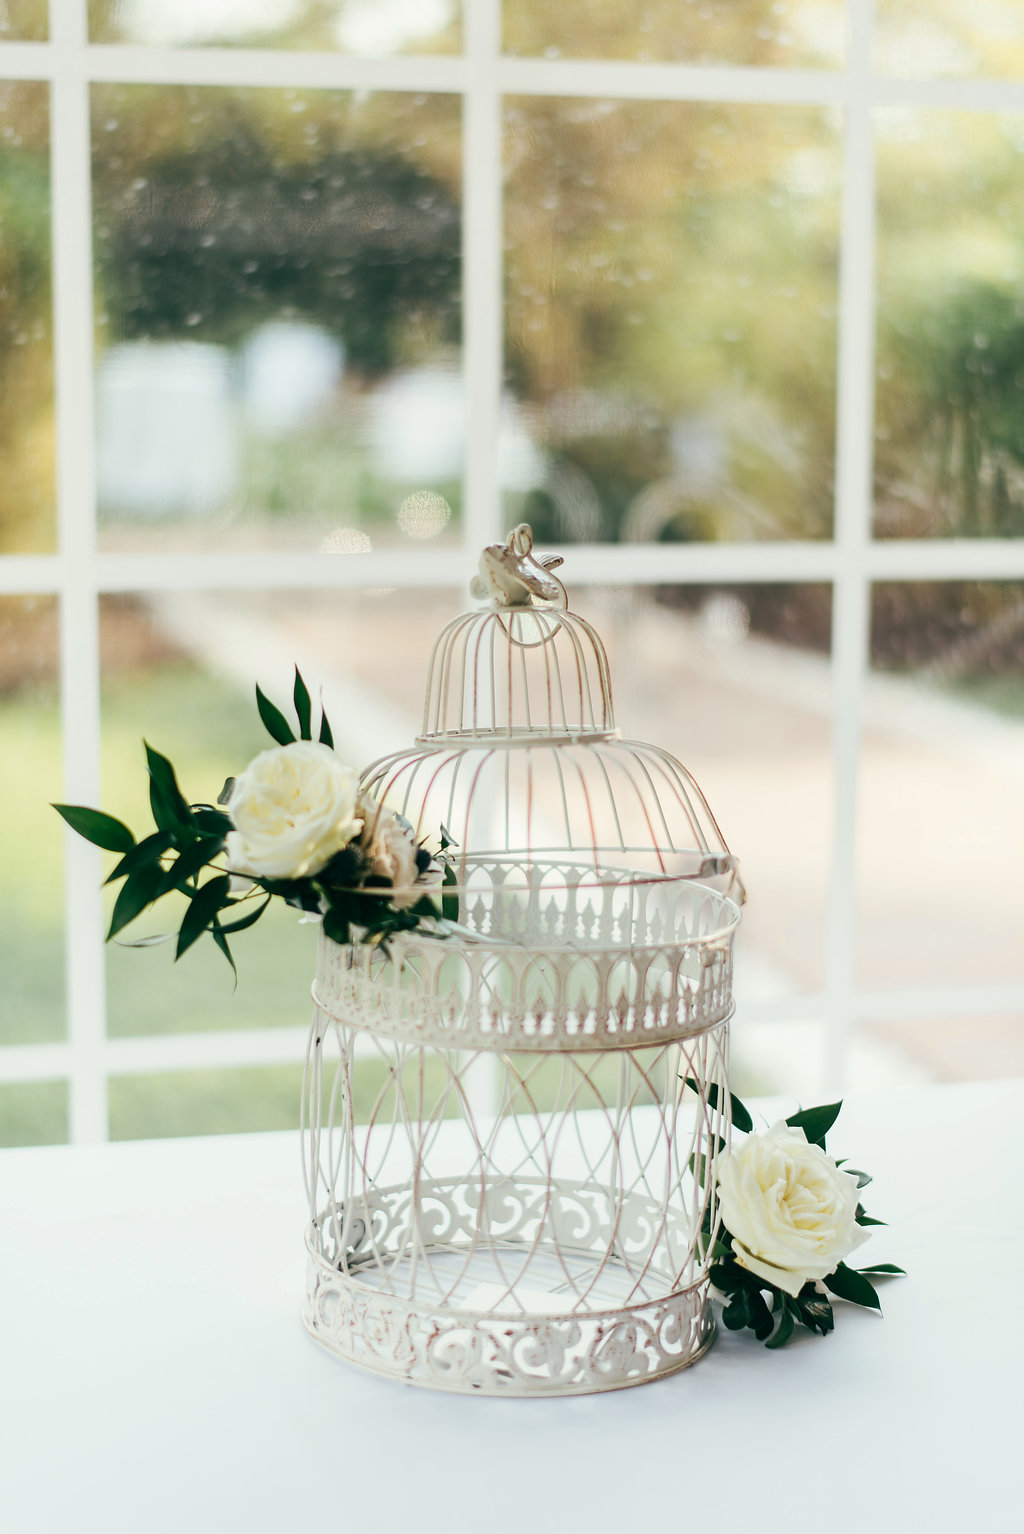 Atelier Ashley Flowers + Woodlawn + Pope Leighhey House + Anna Reynal Photography + DC Weddings + DC Florist + card cage